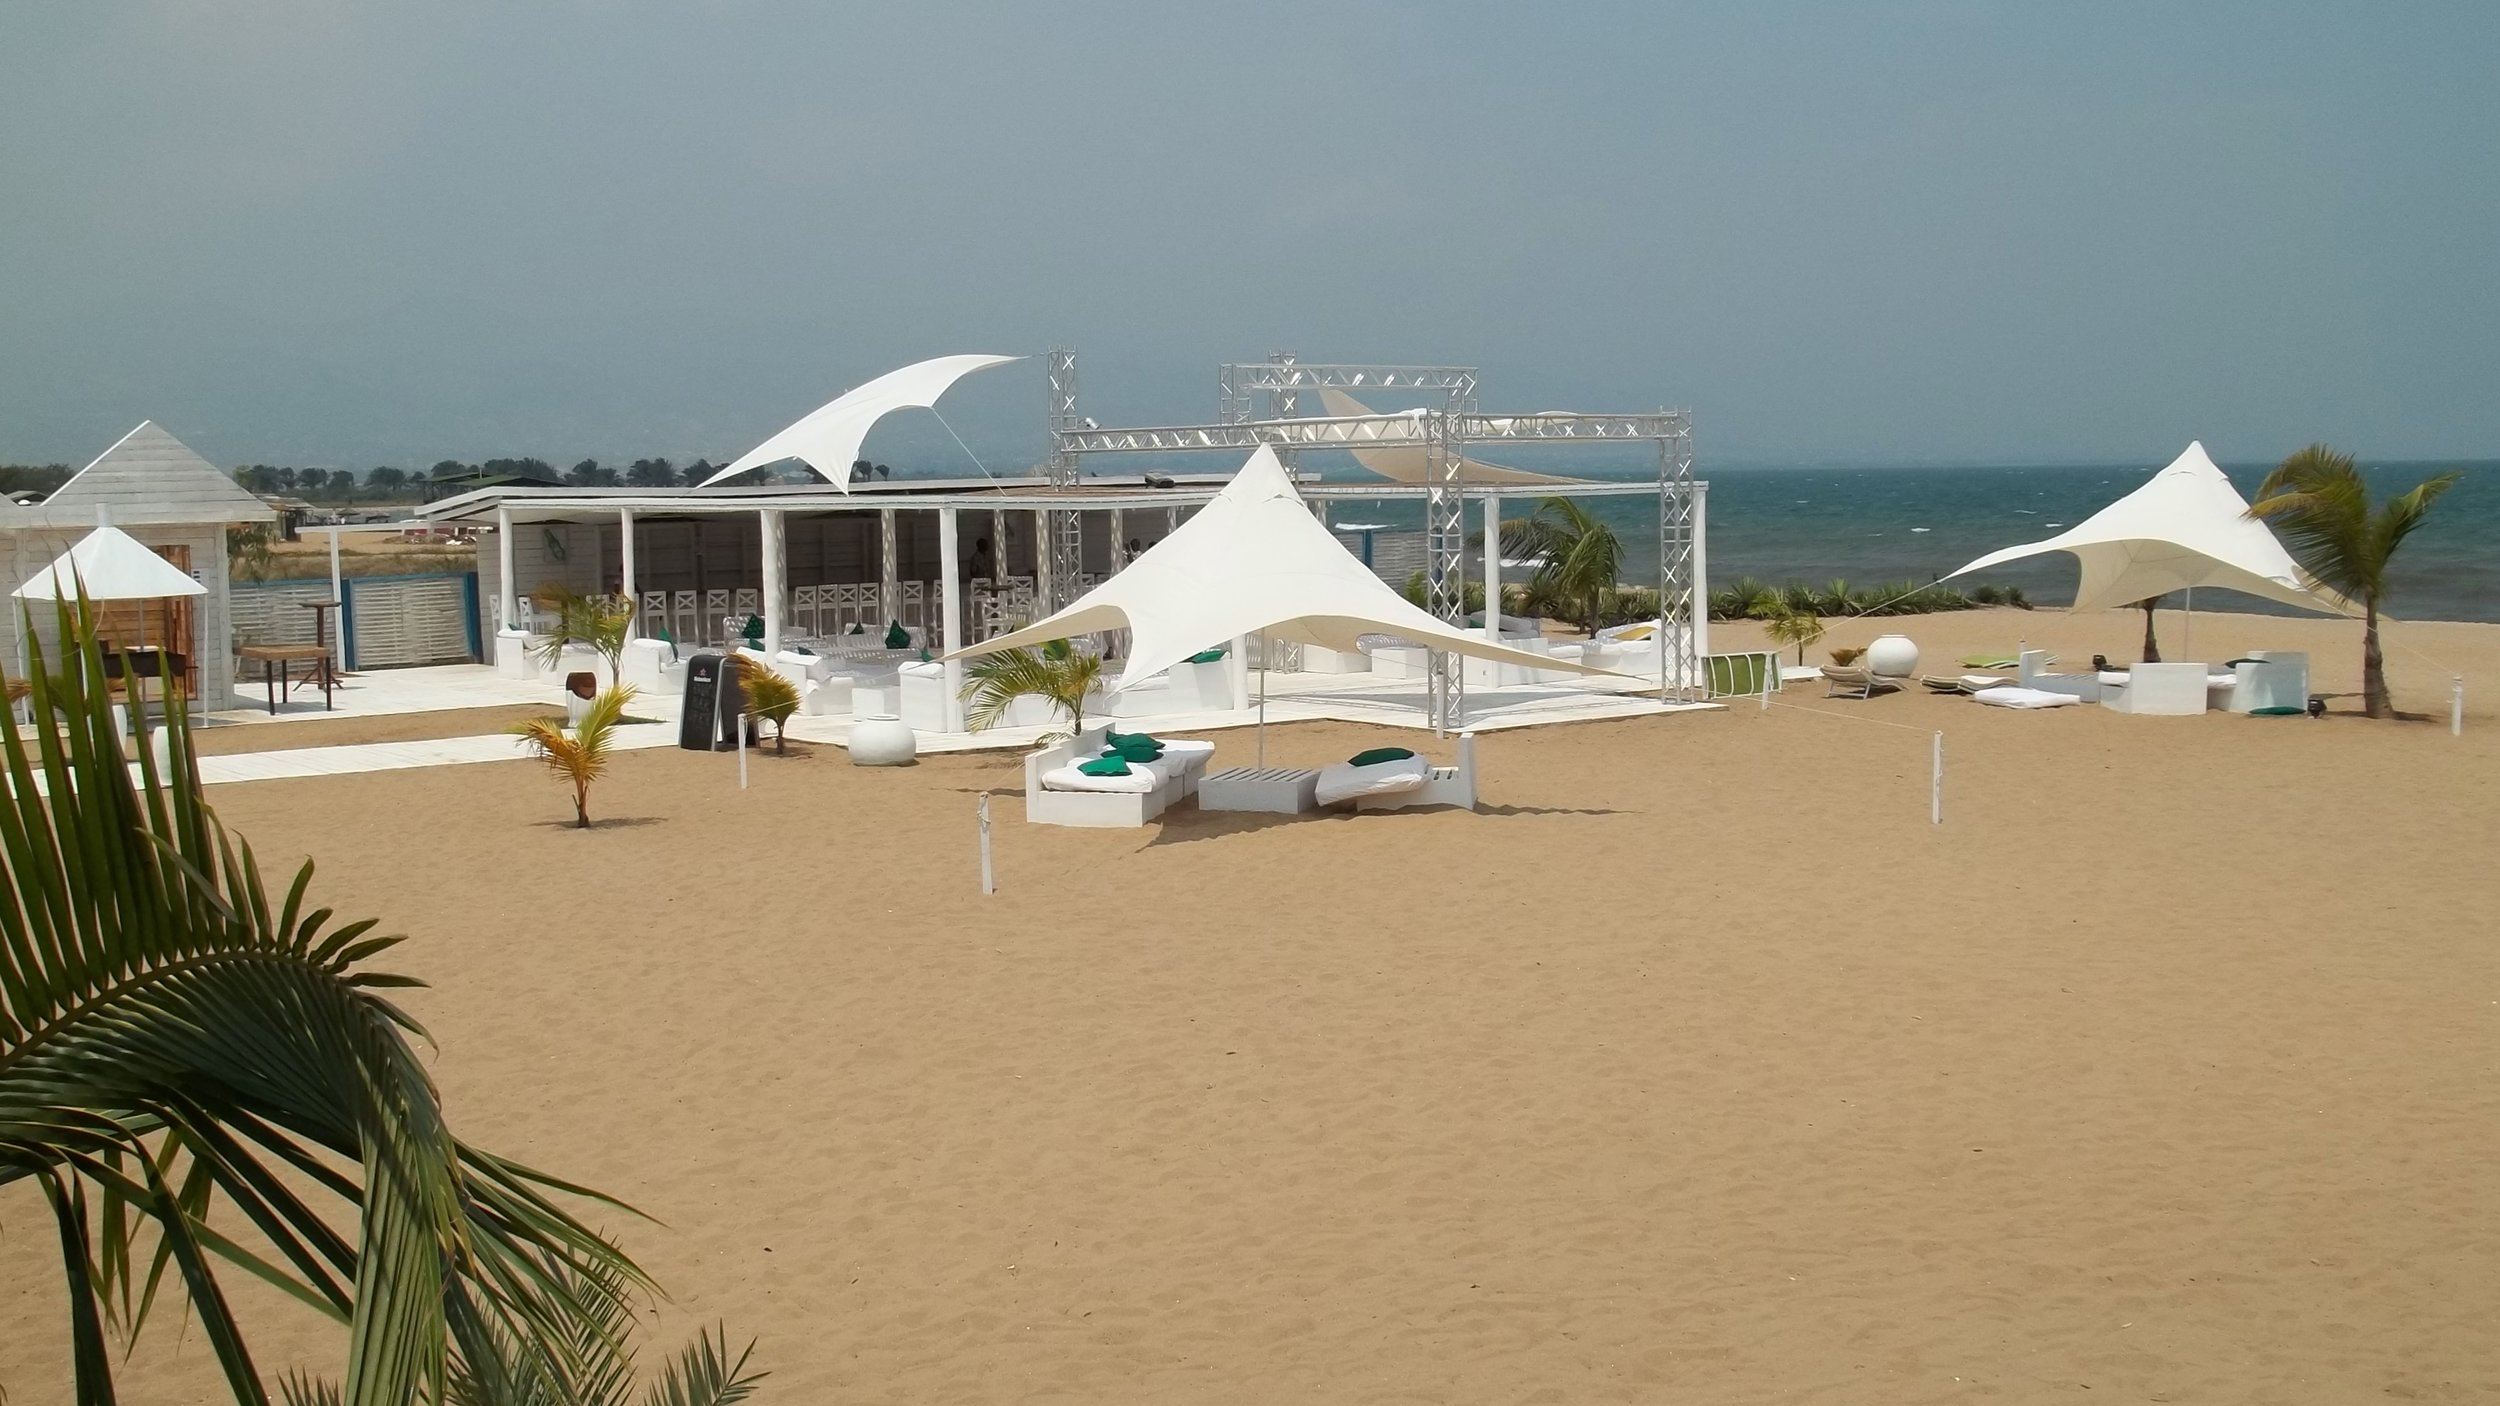 A view of Lake Tanganyika from the resort